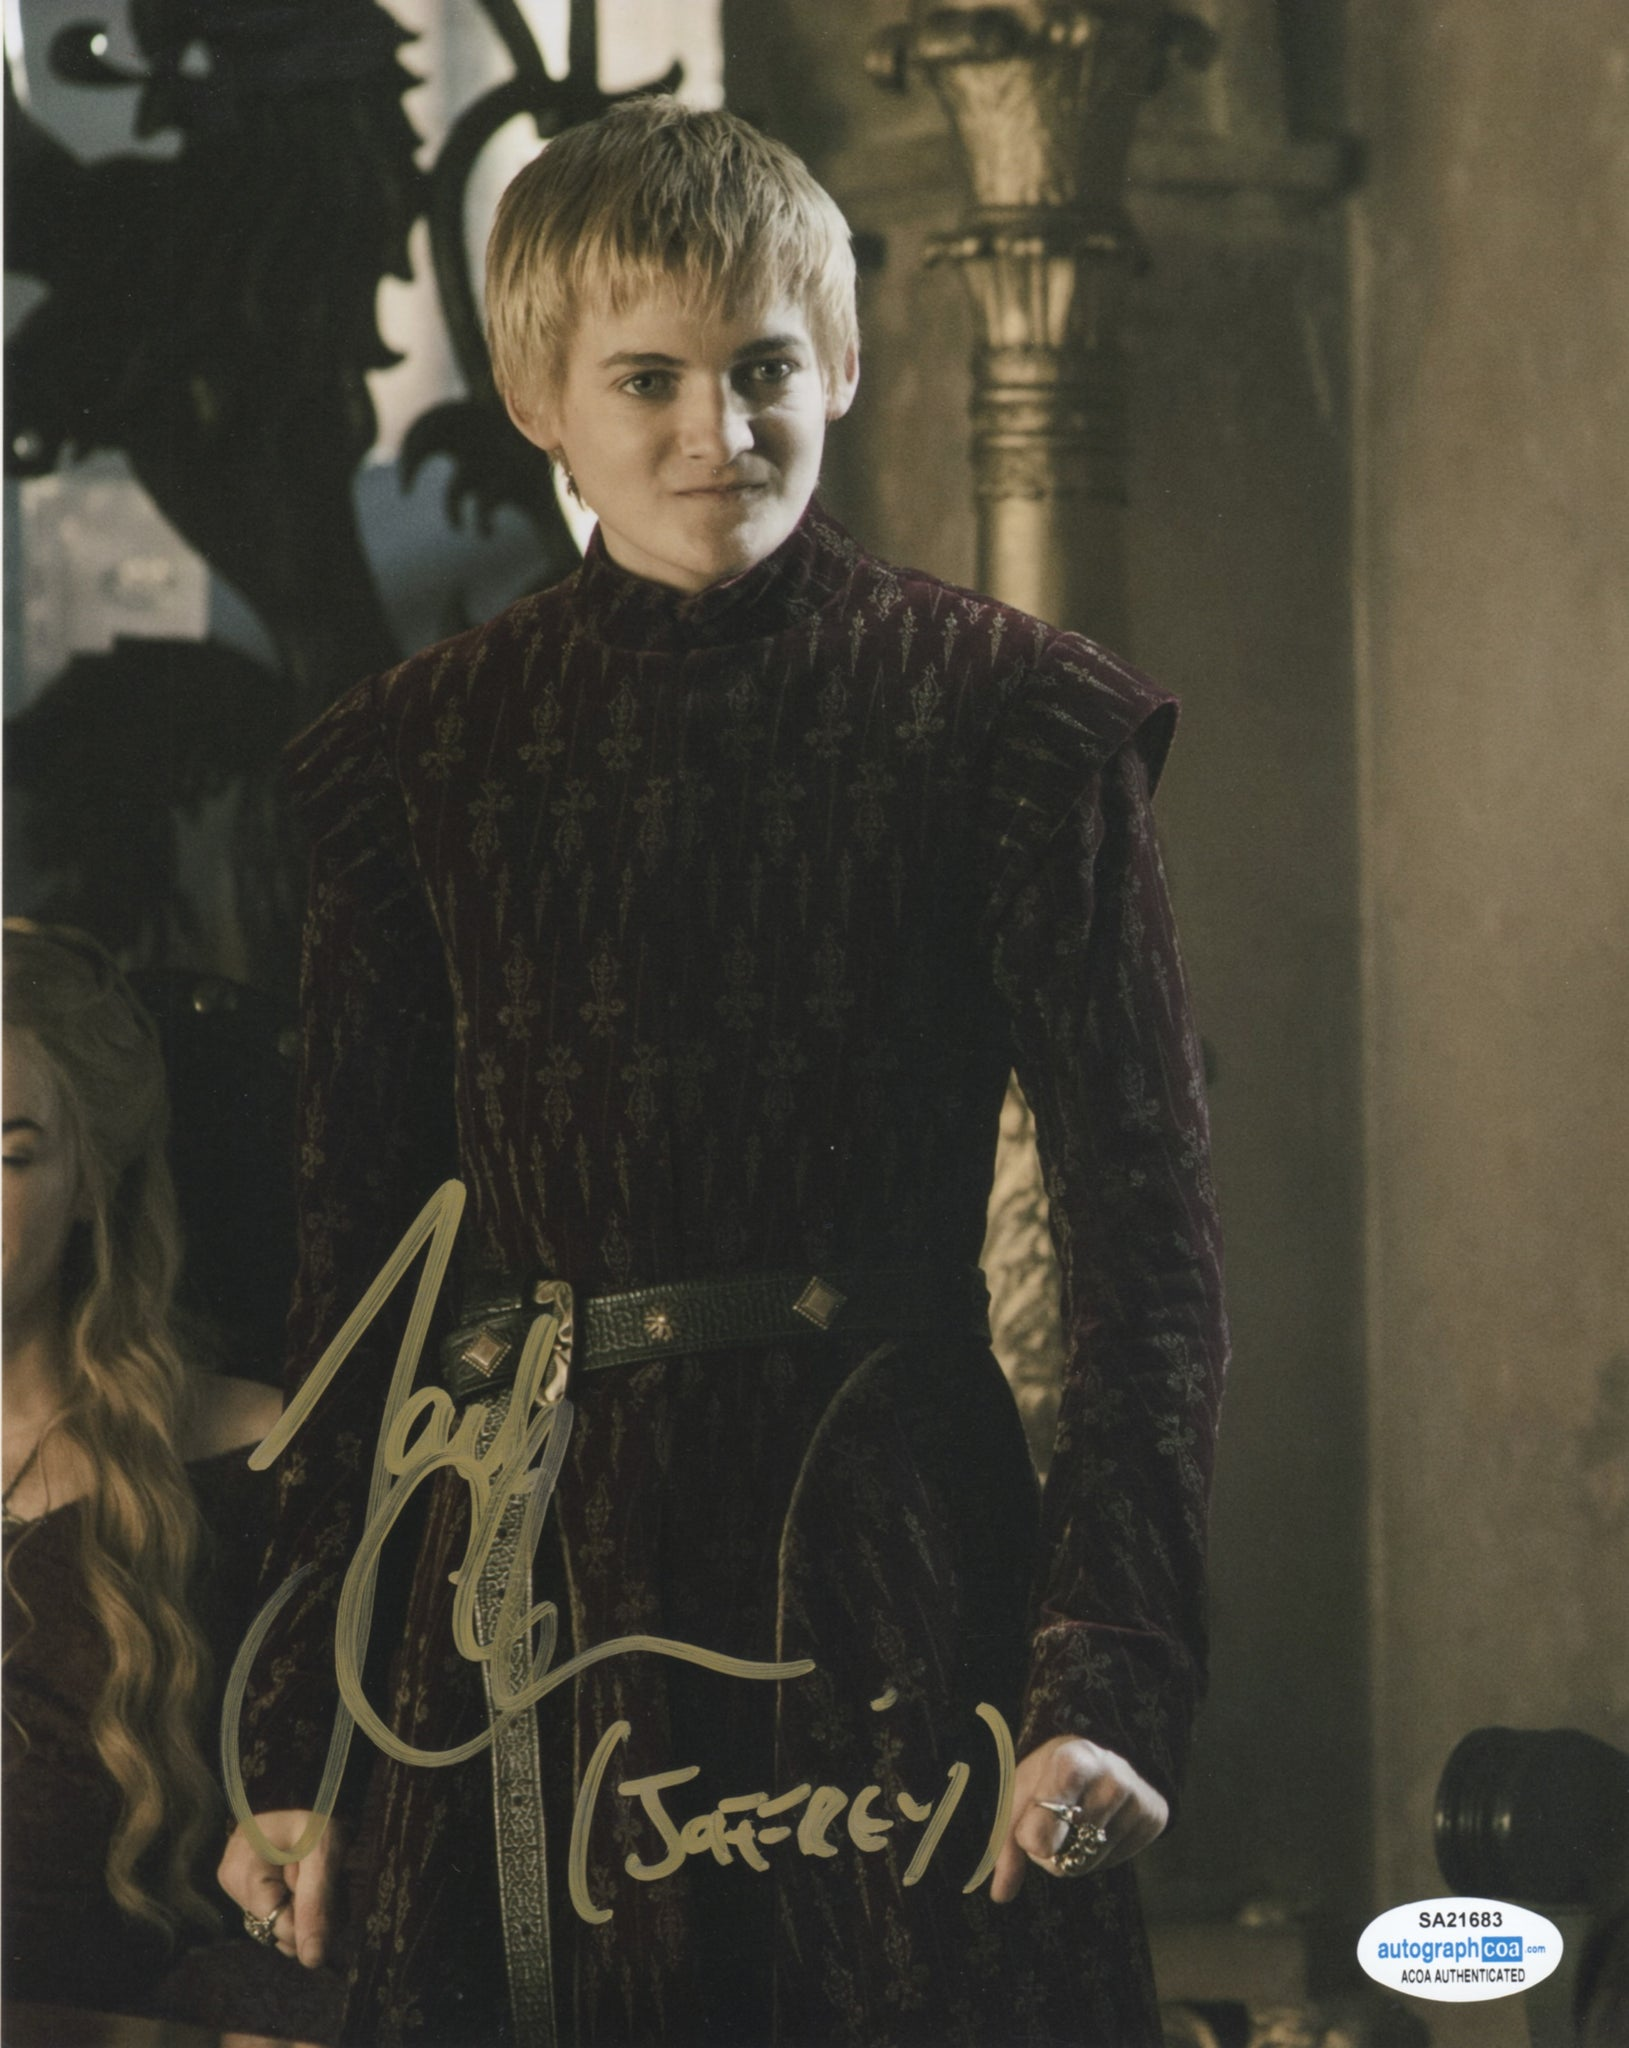 Jack Gleeson Game of Thrones Signed Autograph 8x10 Photo - Outlaw Hobbies Authentic Autographs